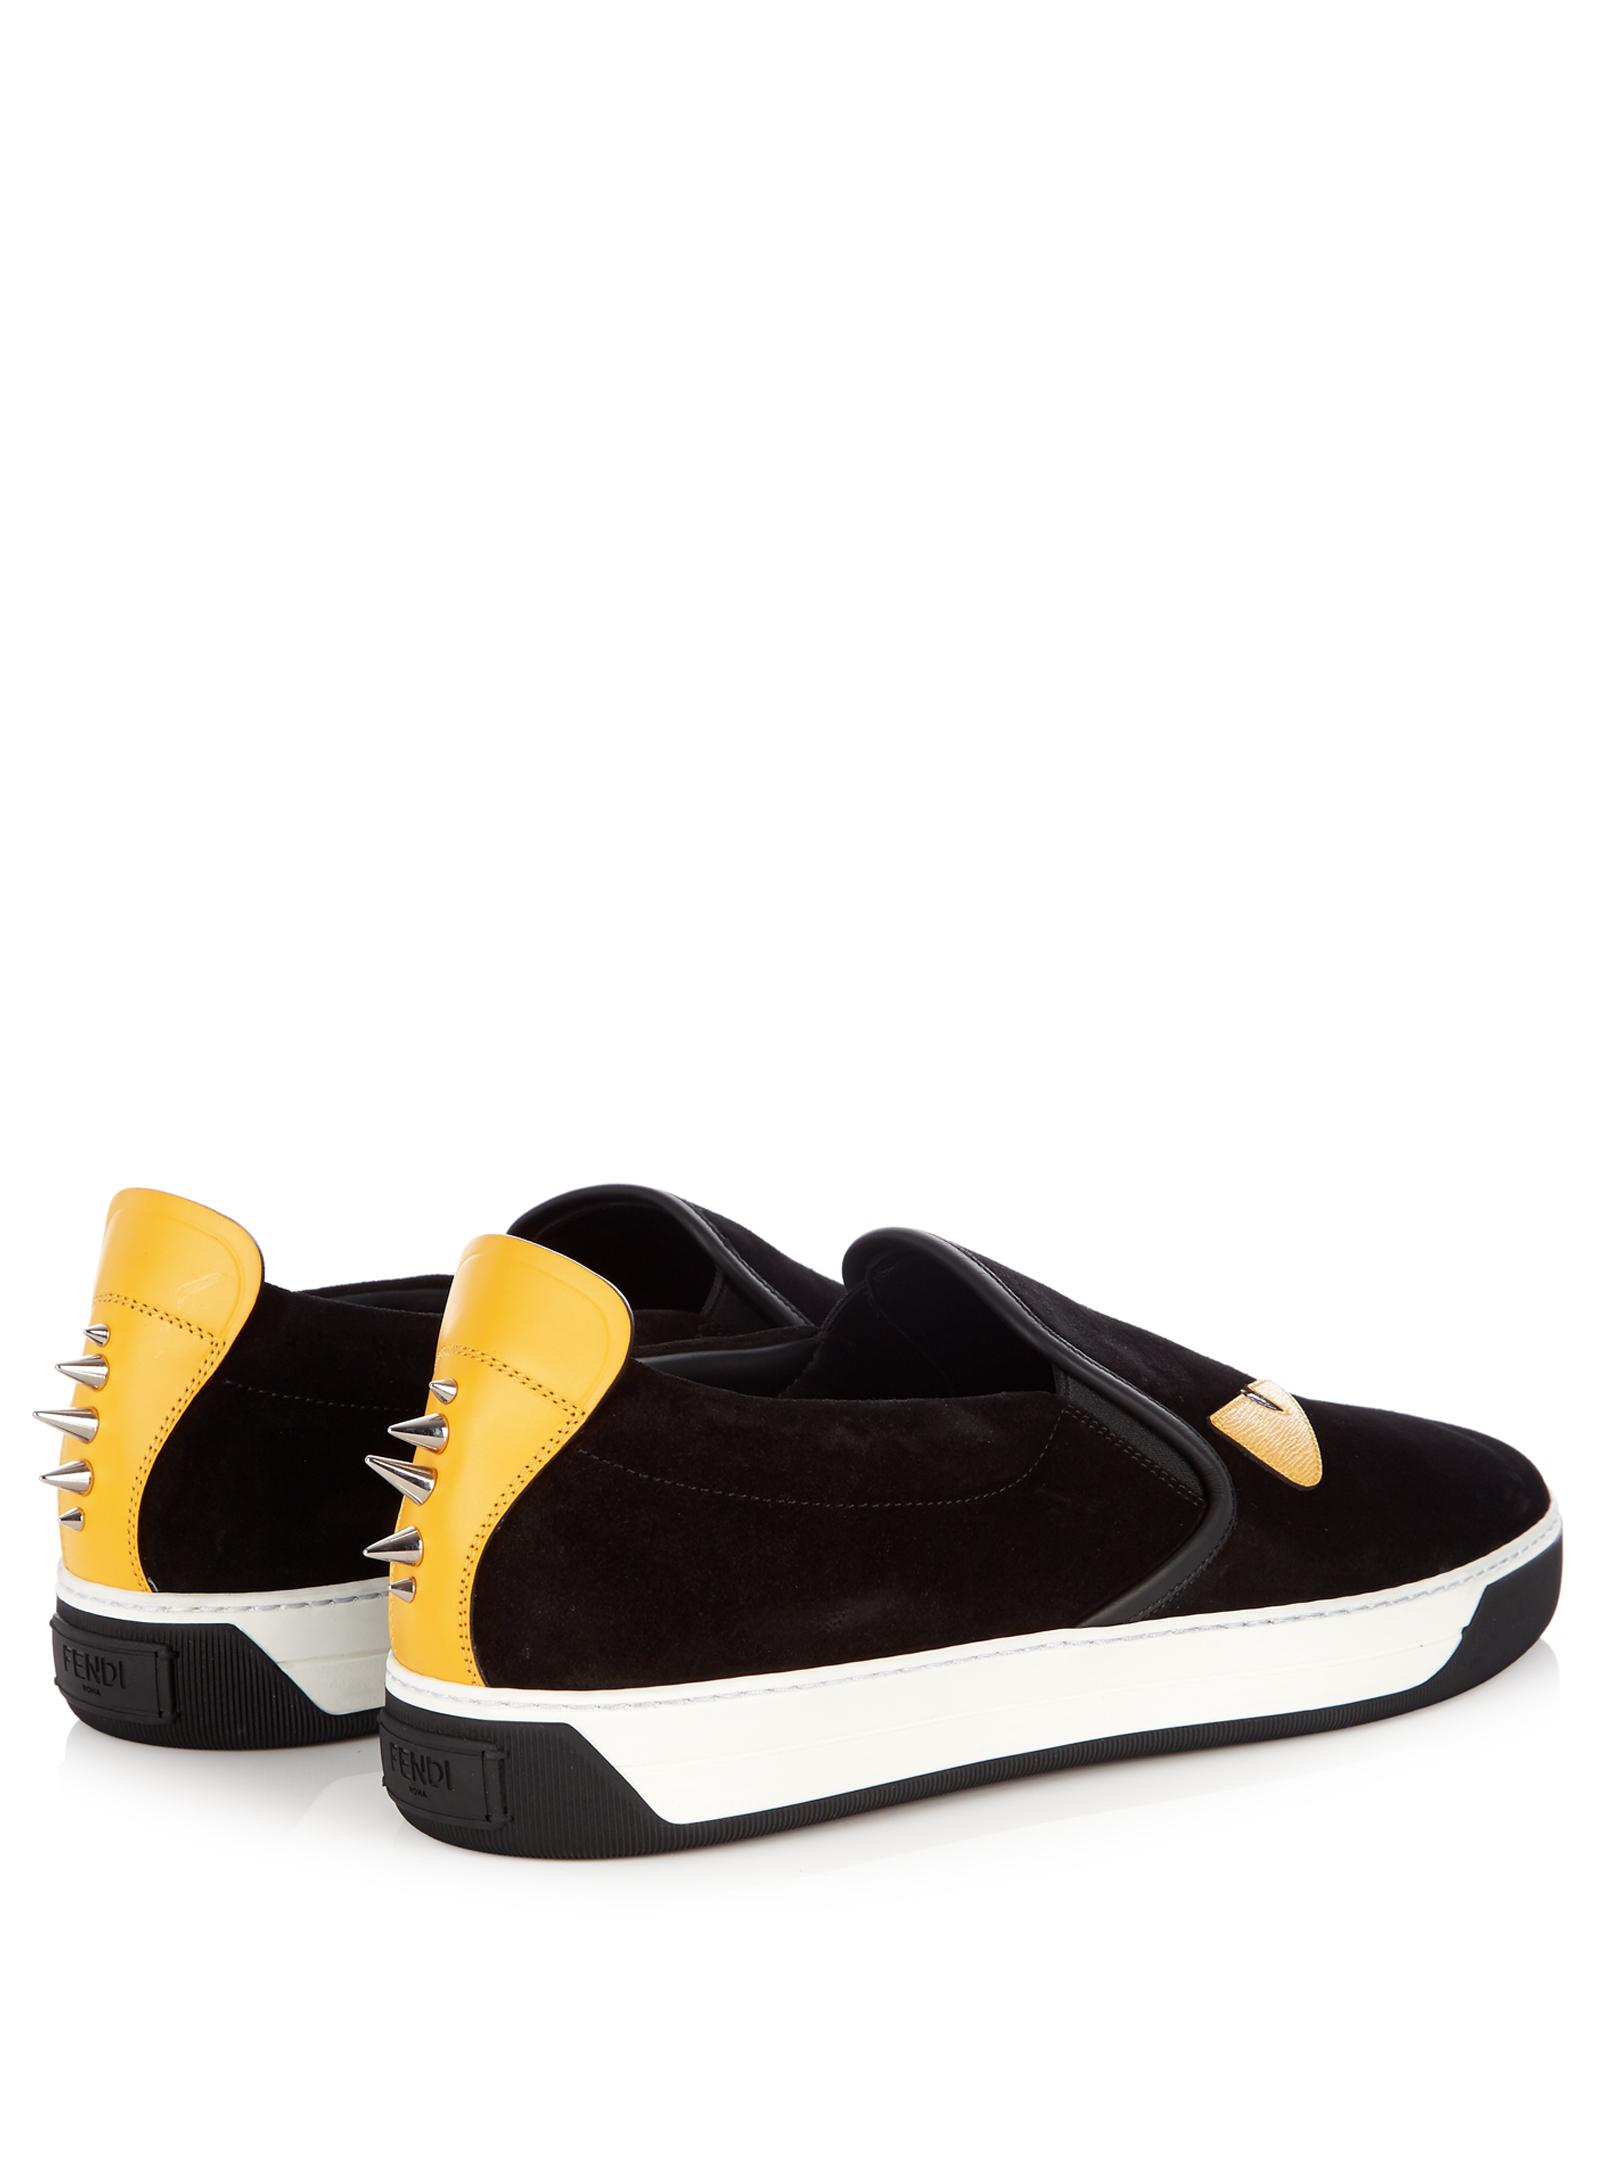 Fendi Bag Bugs Slip-on Leather Trainers in Black for Men